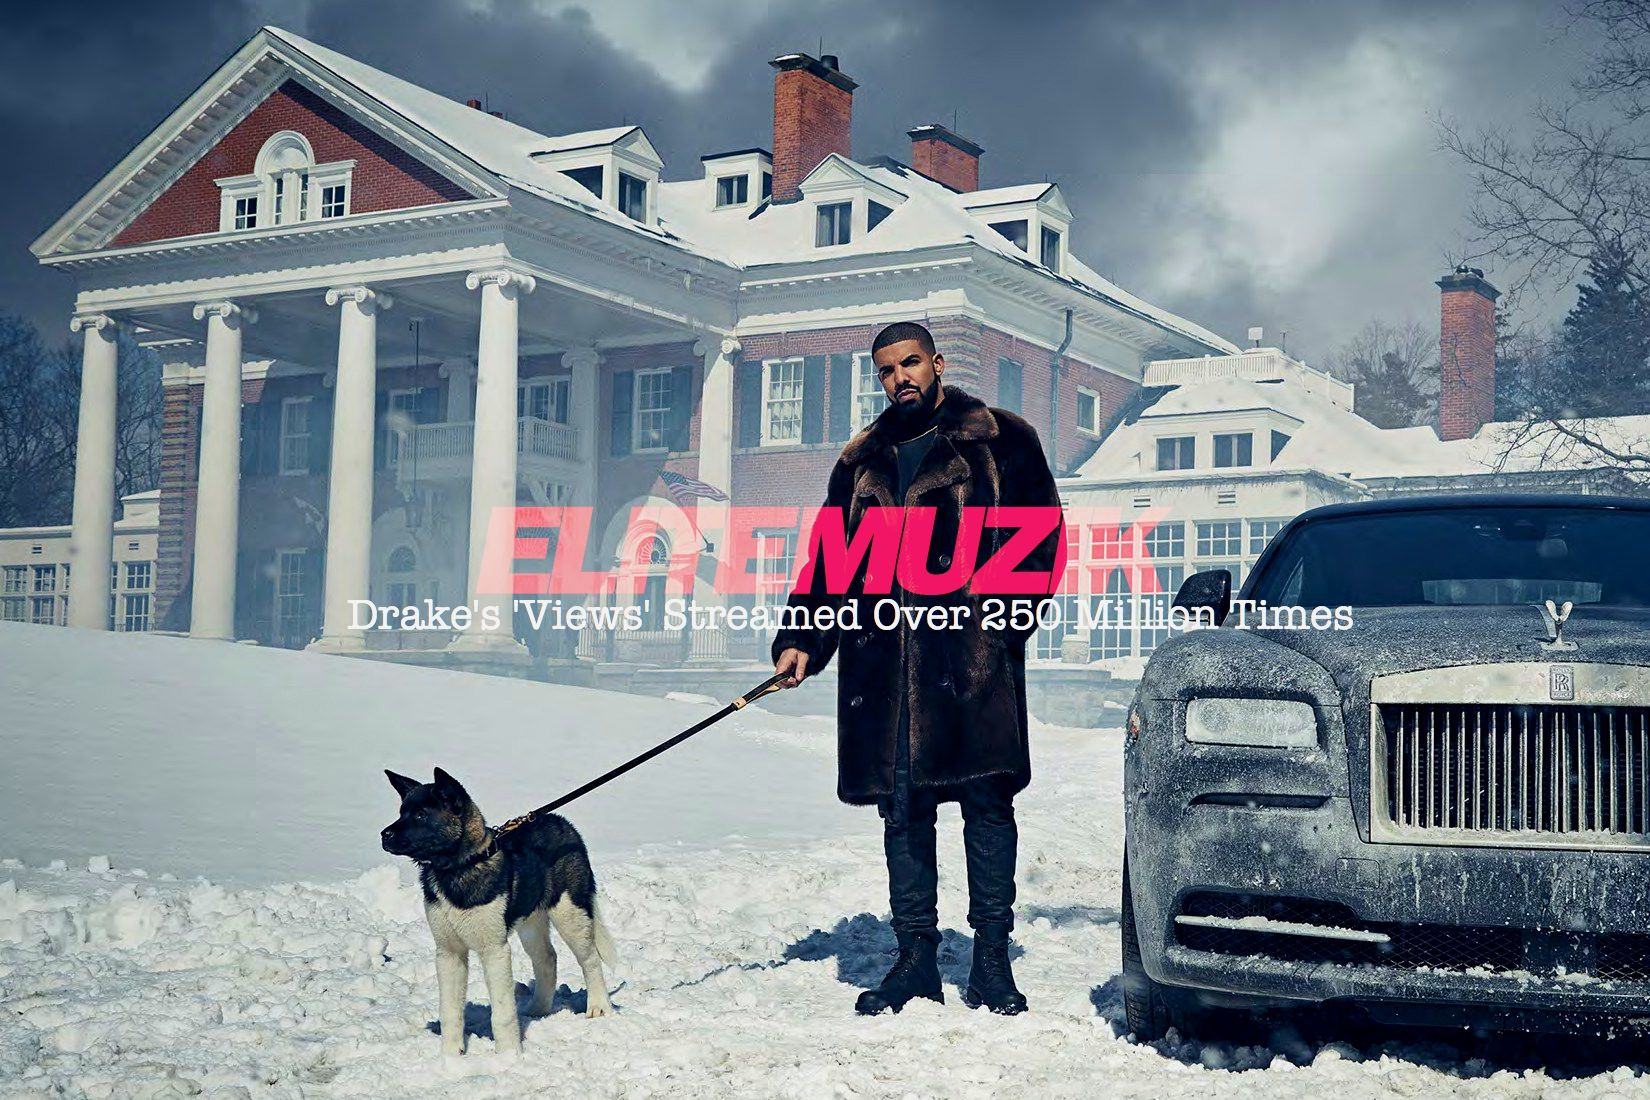 Drake's 'Views' Streamed Over 250 Million Times Exclusively on Apple Music